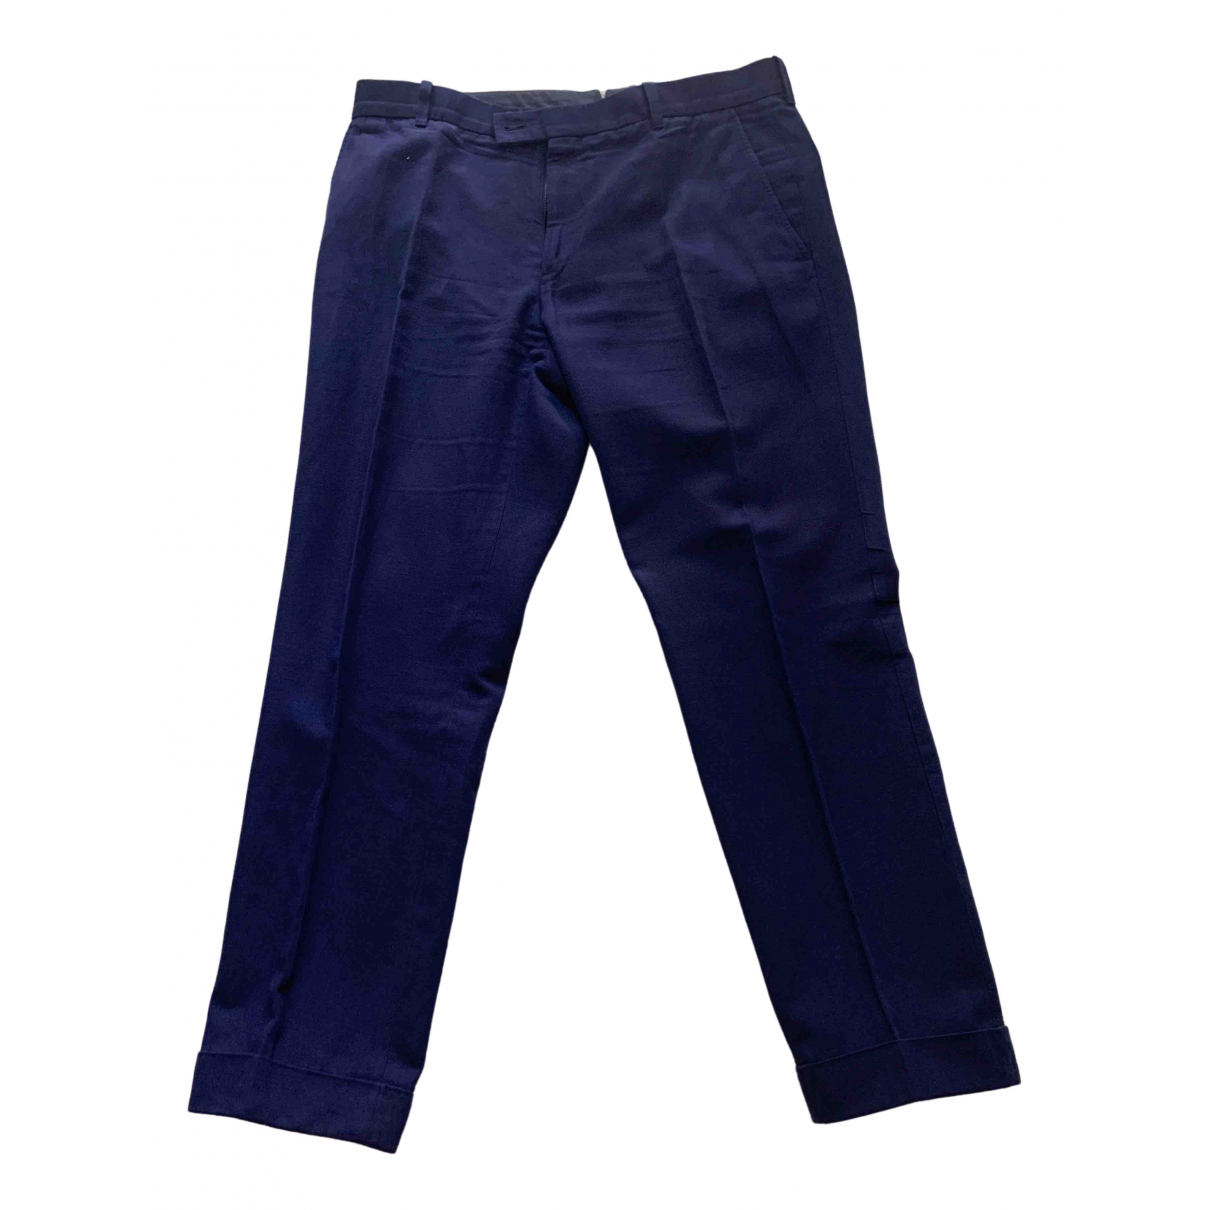 Tom Ford \N Blue Cotton Trousers for Men XL International